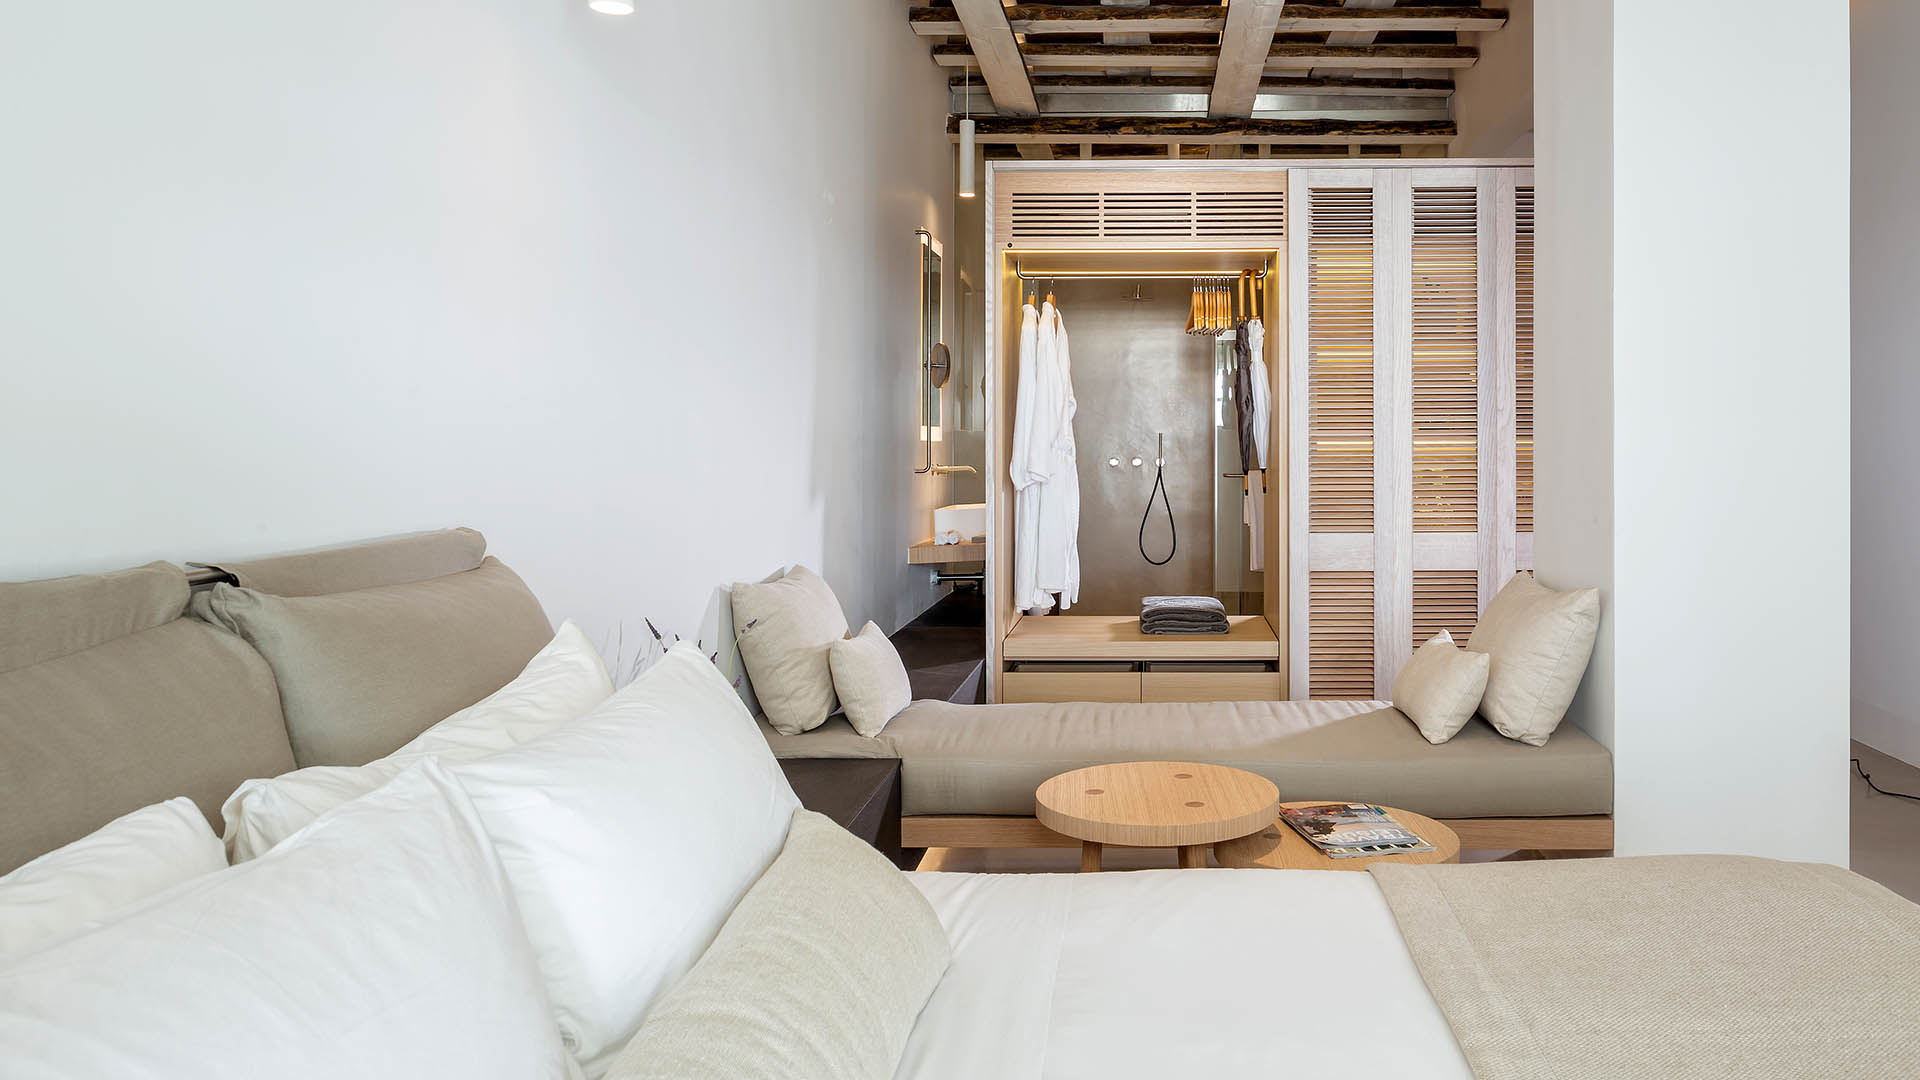 Bill & Coo Boutique Hotel - BACHELOR SUITE (8)